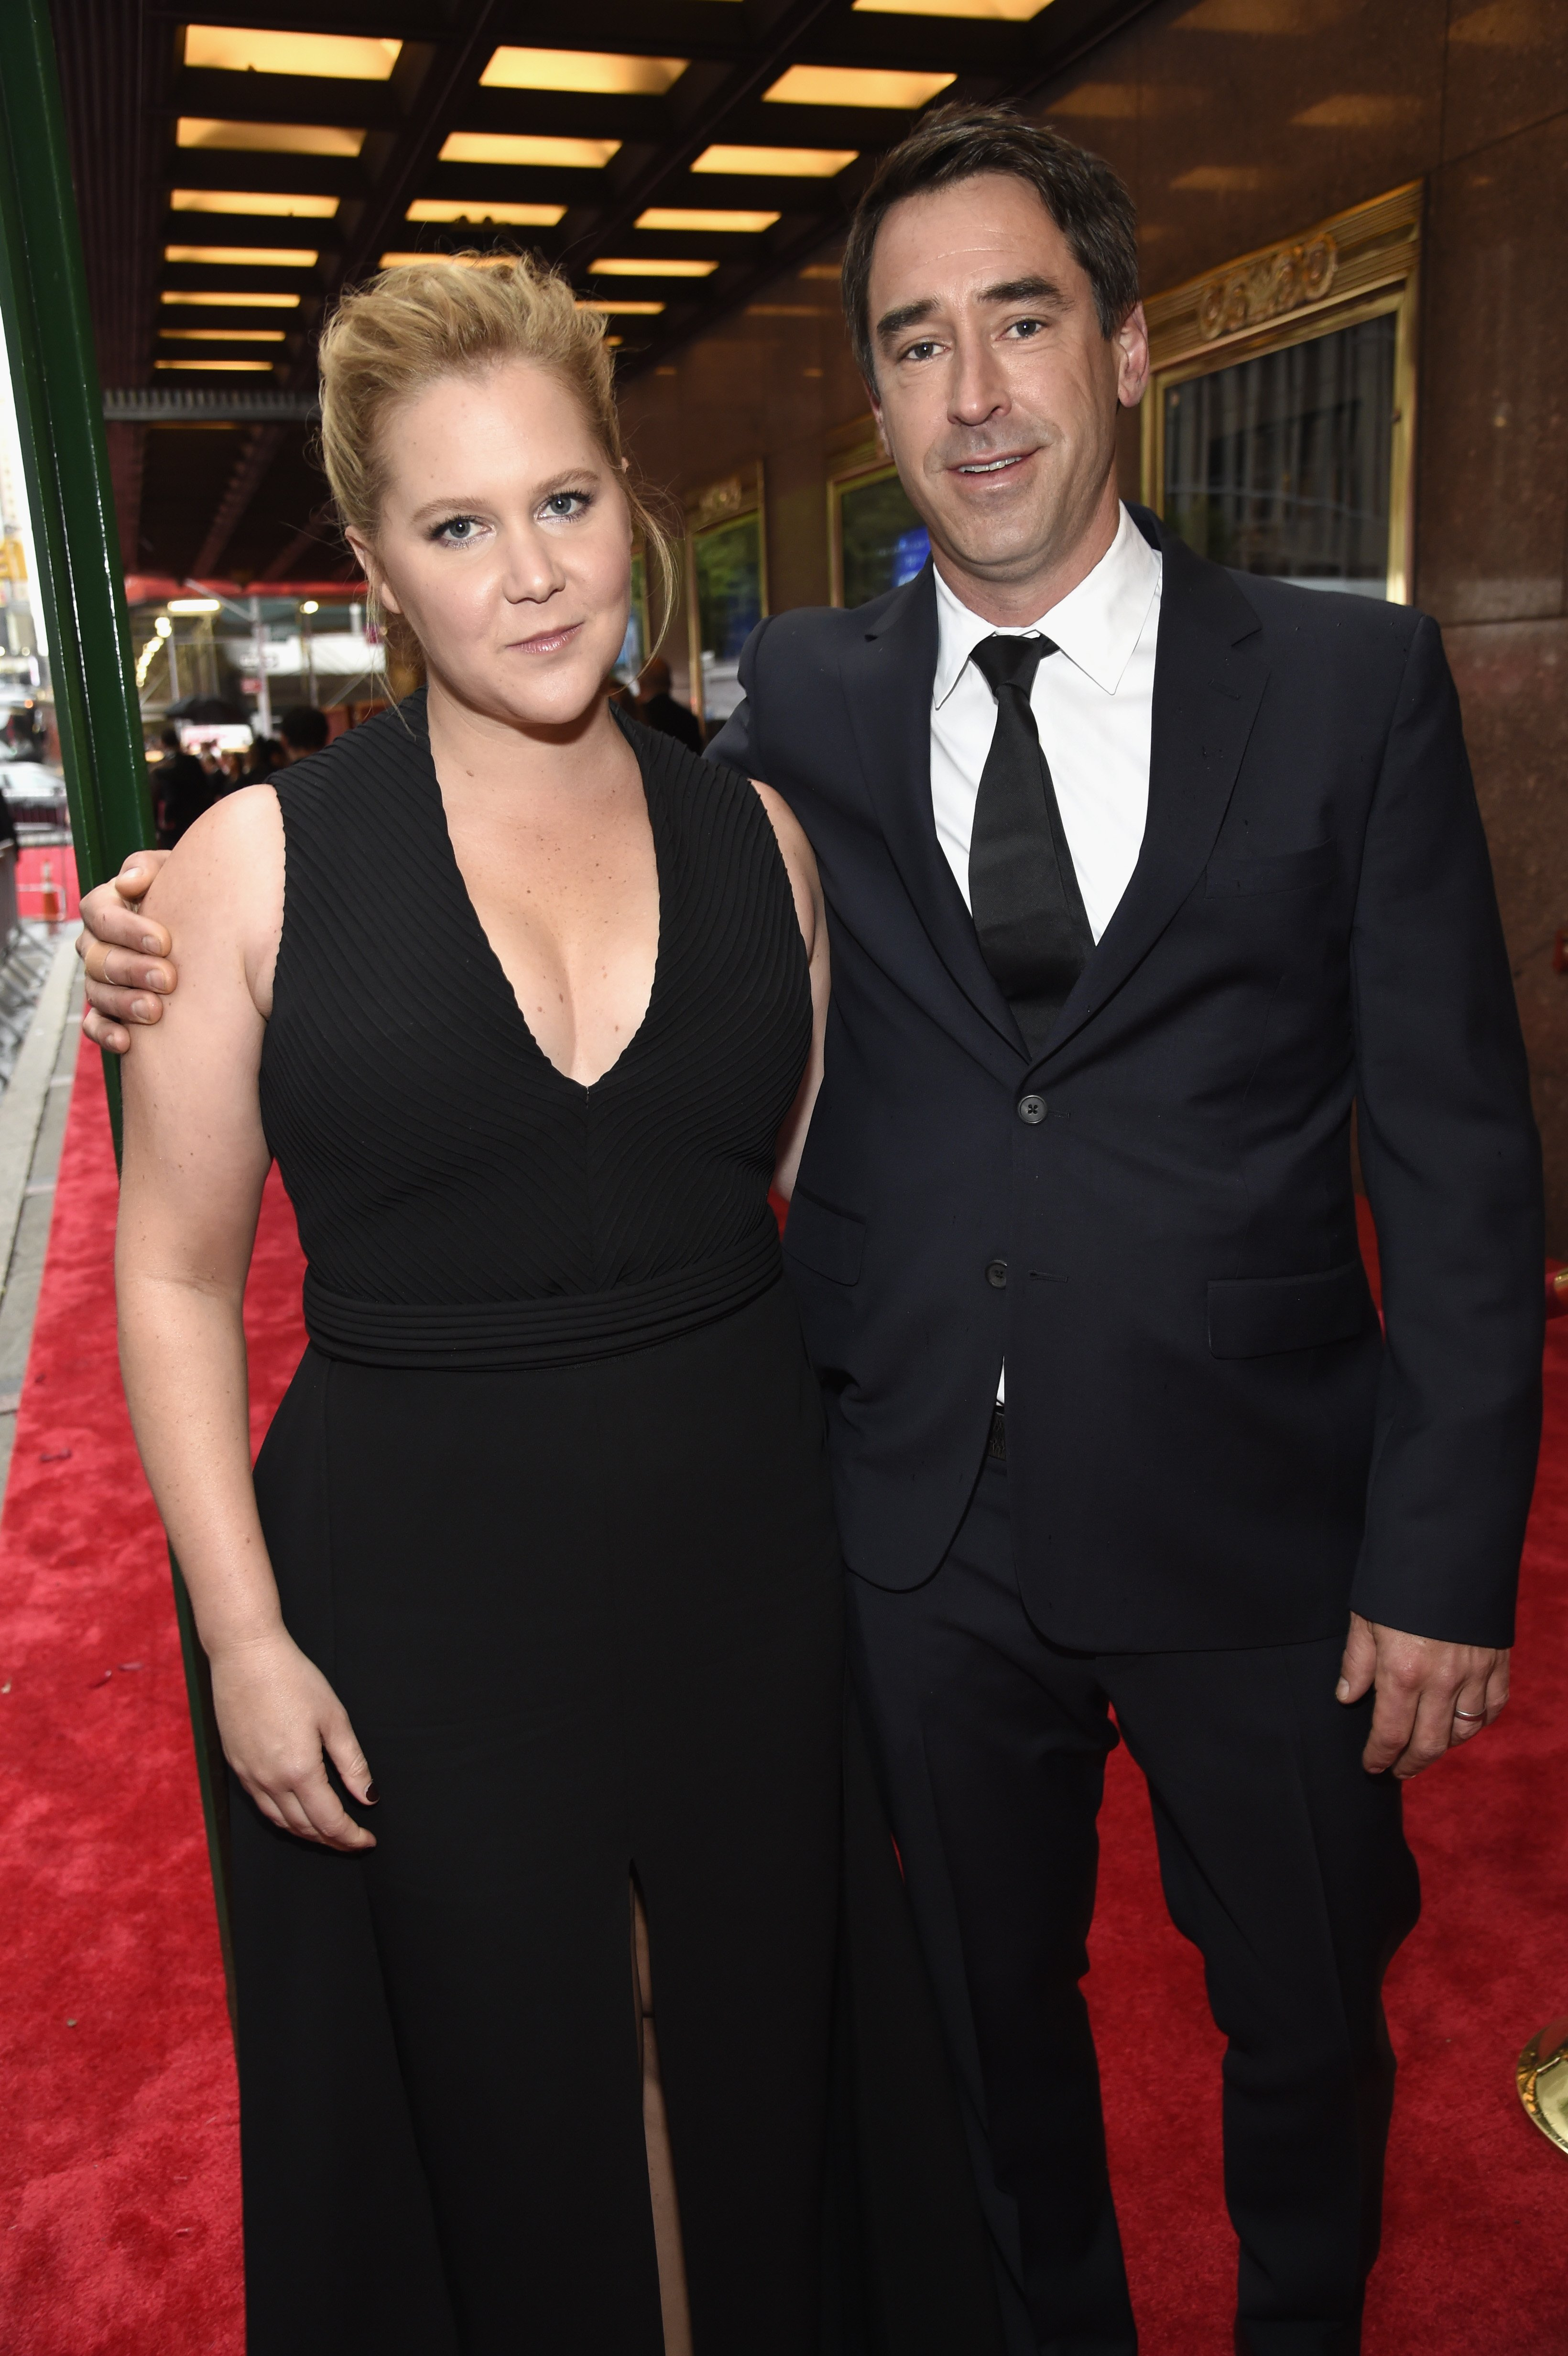 Amy Schumer and Chris Fischer attend the 72nd Annual Tony Awards. | Source: Getty Images